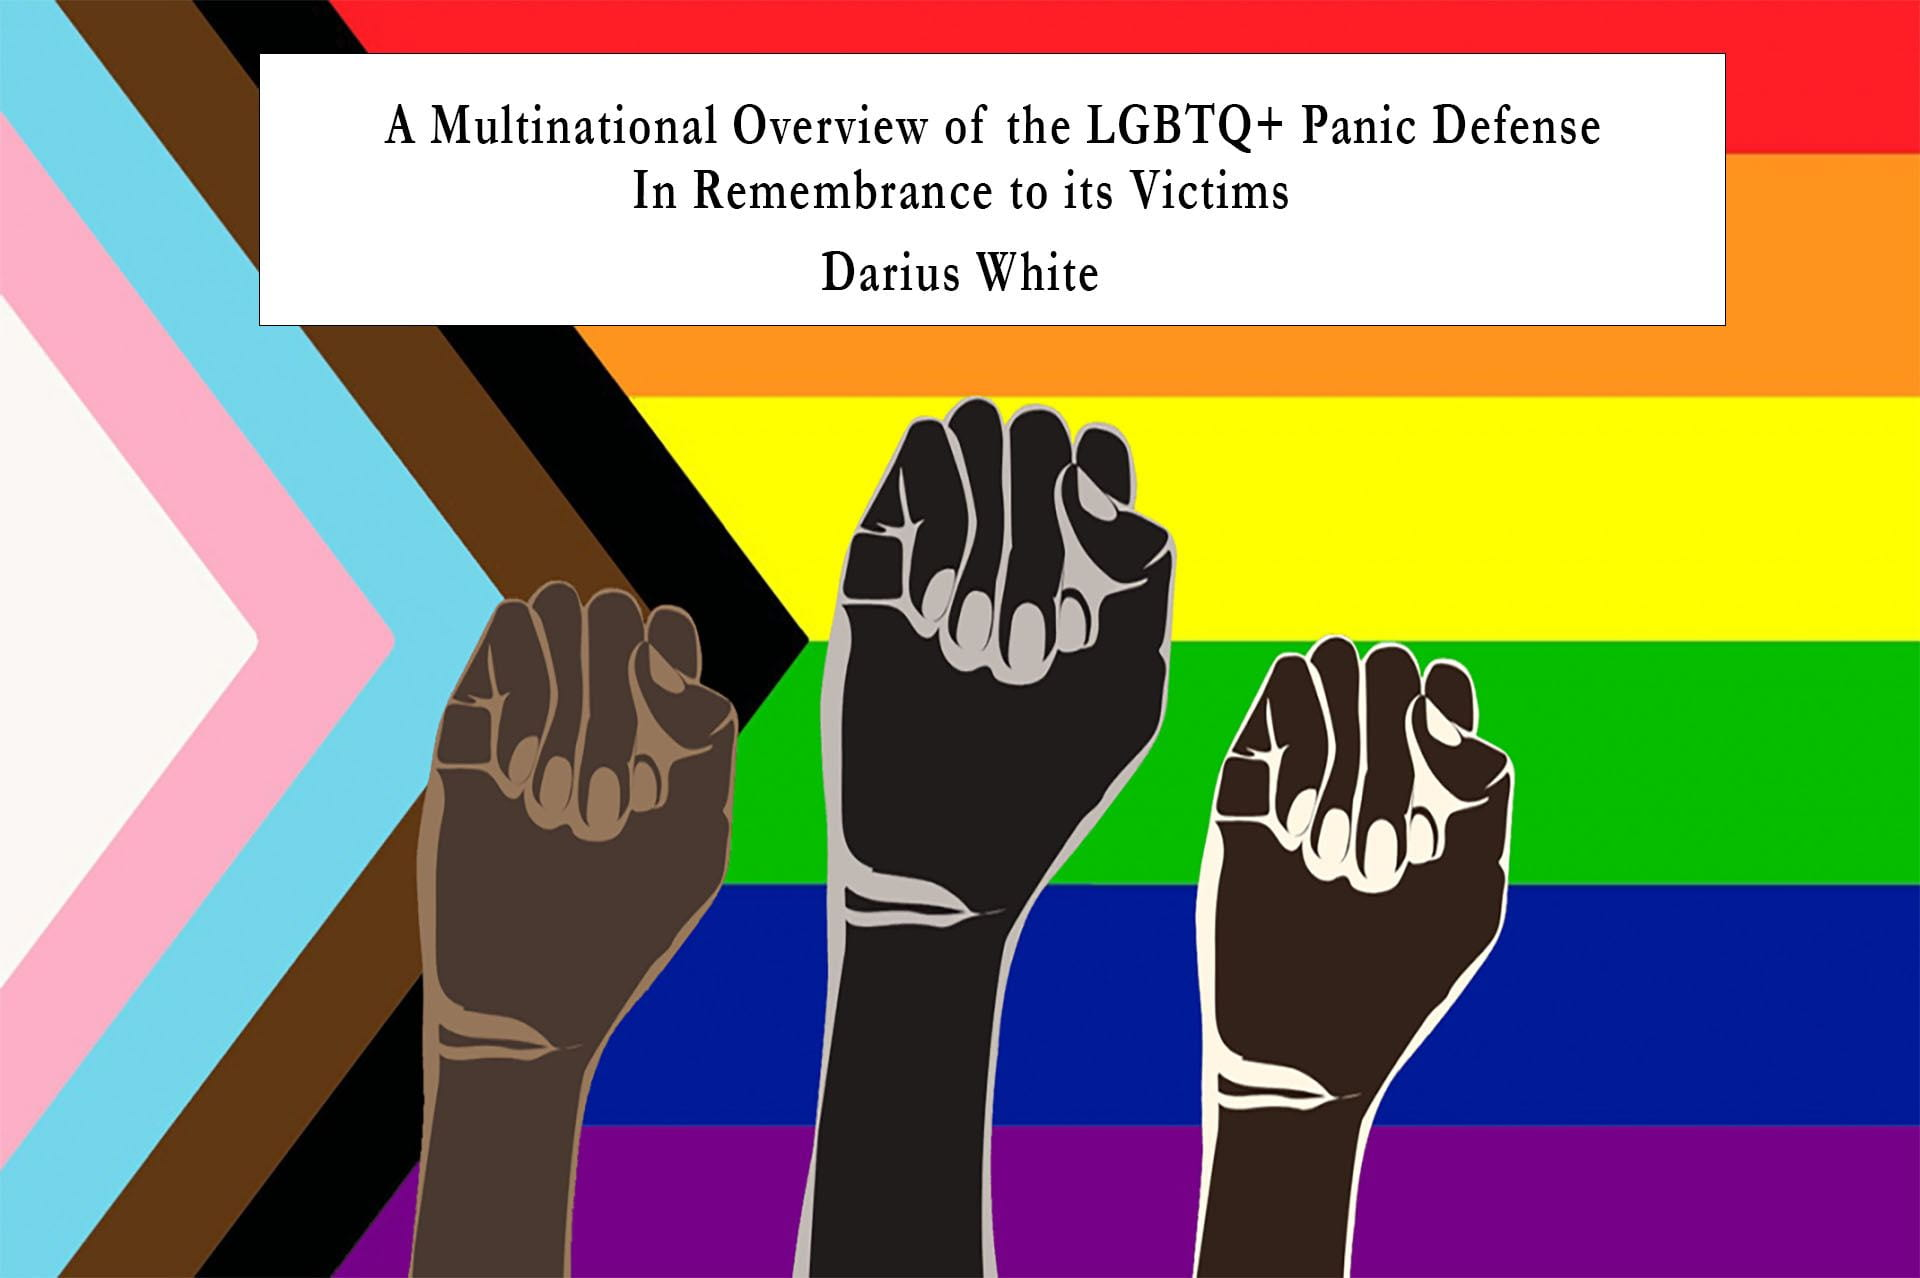 LGBTQ+ Flag with Black Power Solidarity Fists in Front Title: A Multinational Overview of the LGBTQ+ Panic Defense in Remembrance to Its Victims Author: Darius White